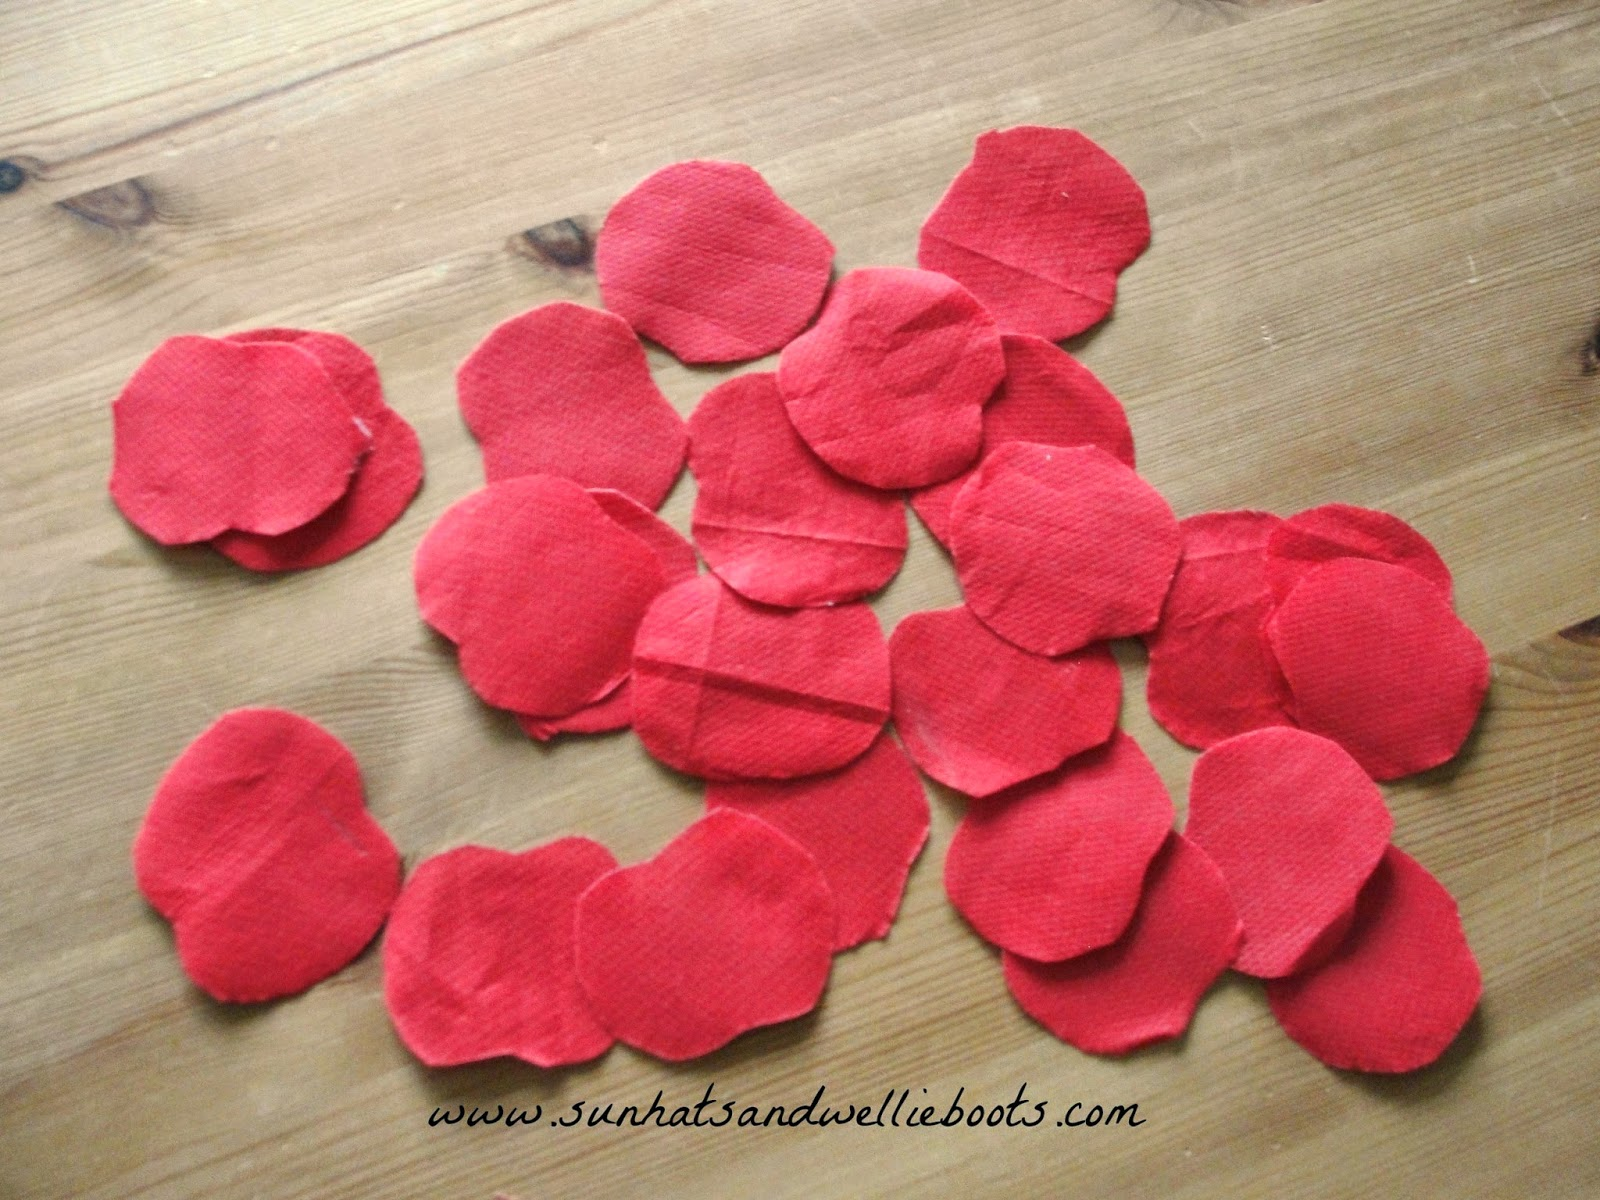 Once we had enough flowers we covered the plate with glue u0026 attached our poppies. We found a glue stick worked best for this craft as the gloopy (PVA) made ... & Sun Hats u0026 Wellie Boots: Paper Plate Poppy Wreath for Remembrance